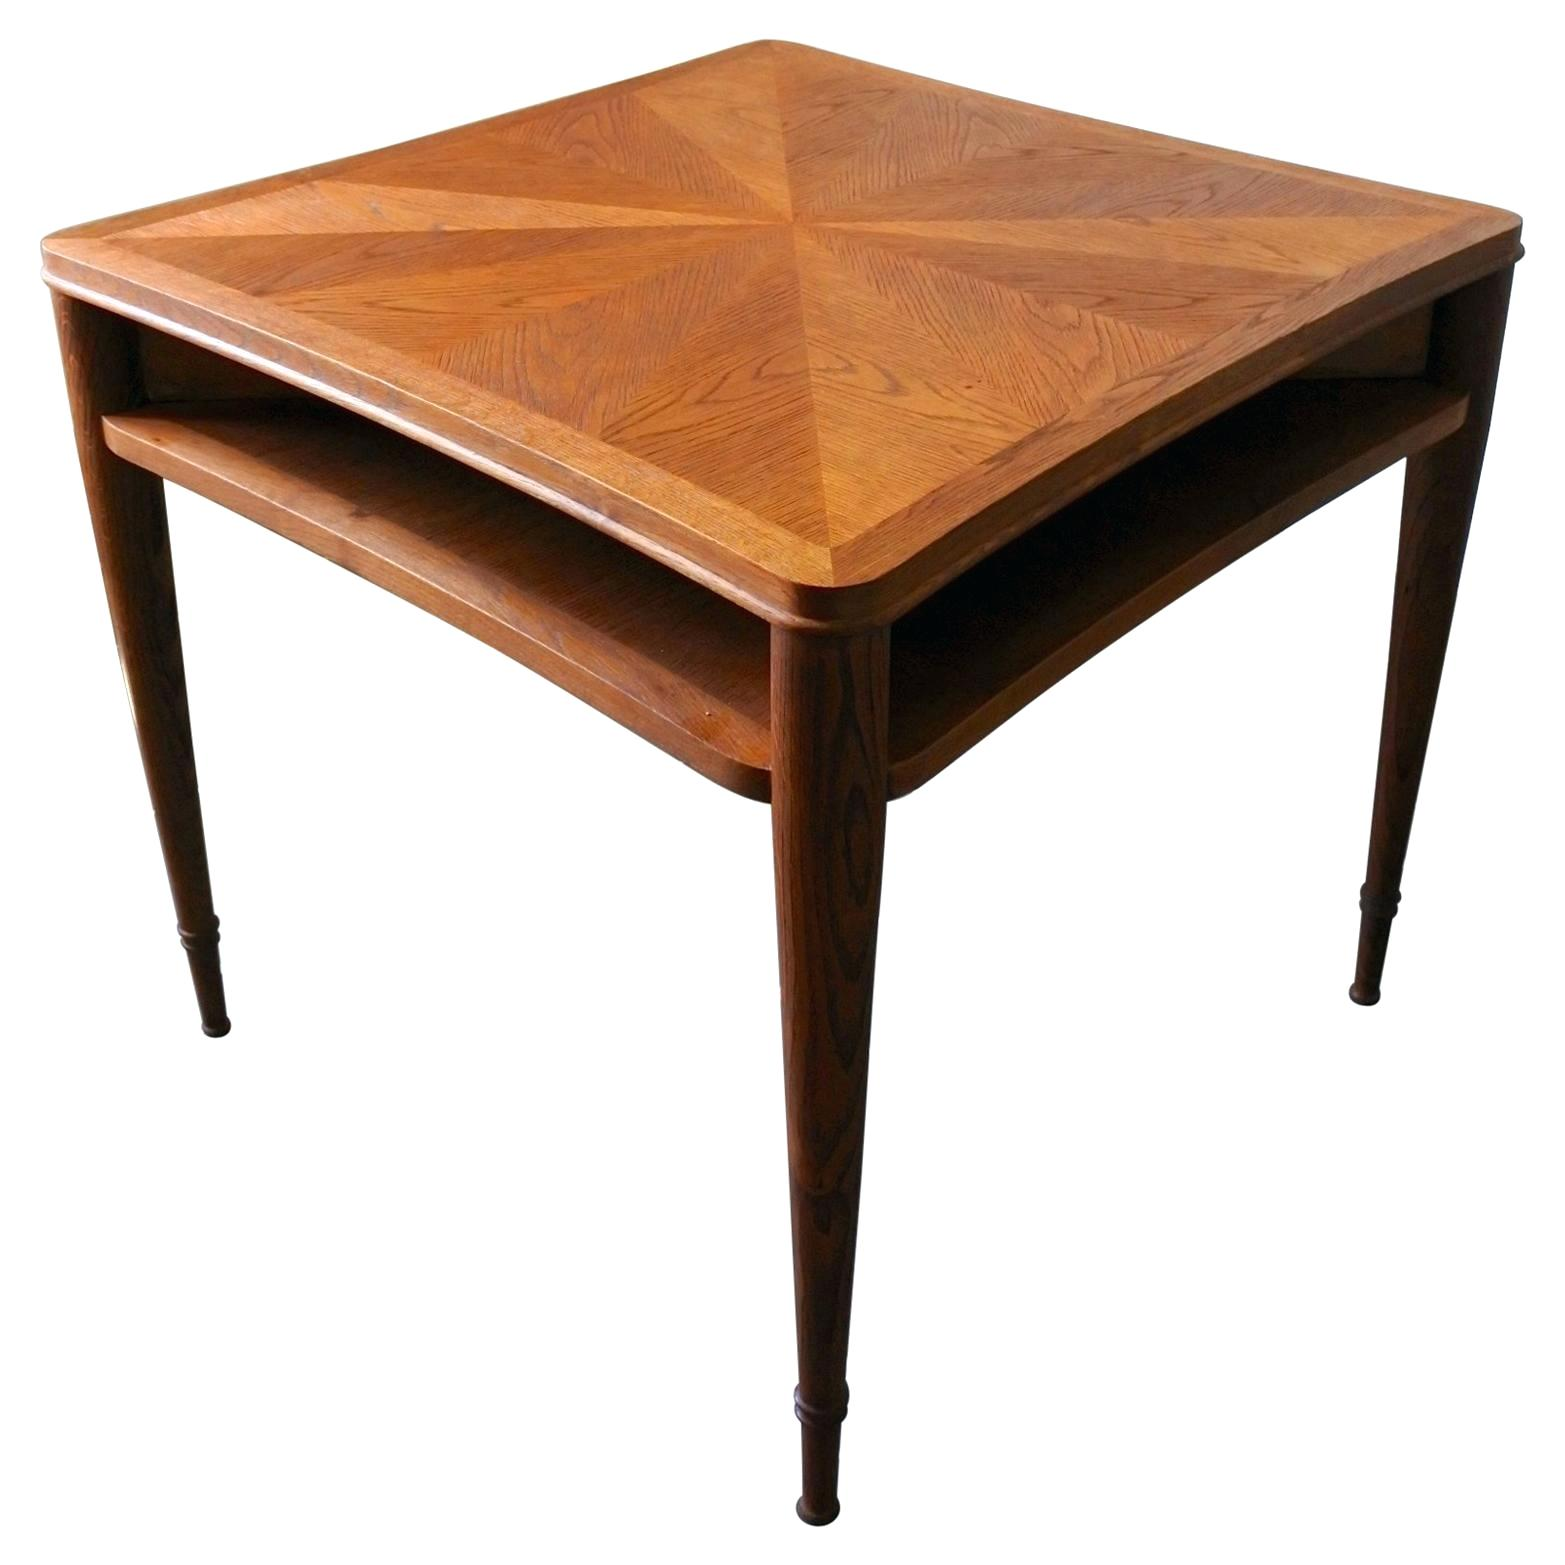 accent dining table matt lacquered oak wood coffee extra large sunburst marquetry for square light tables with drawer aged weathered round side antique ikea storage units lawn